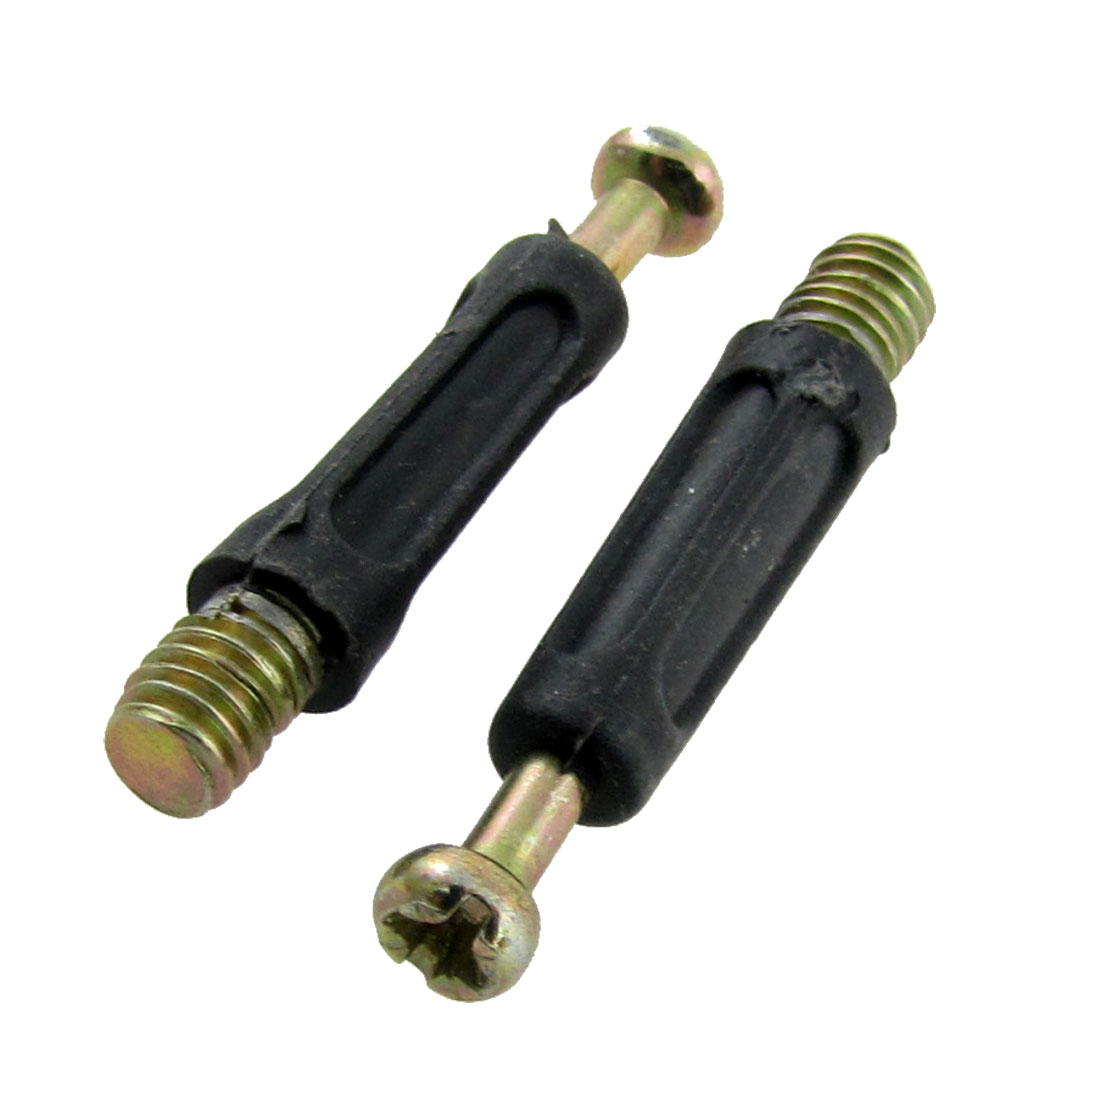 5-Sets-Furniture-Panel-Connecting-0-43-Dia-Cam-Fittings-Bolts-Nuts